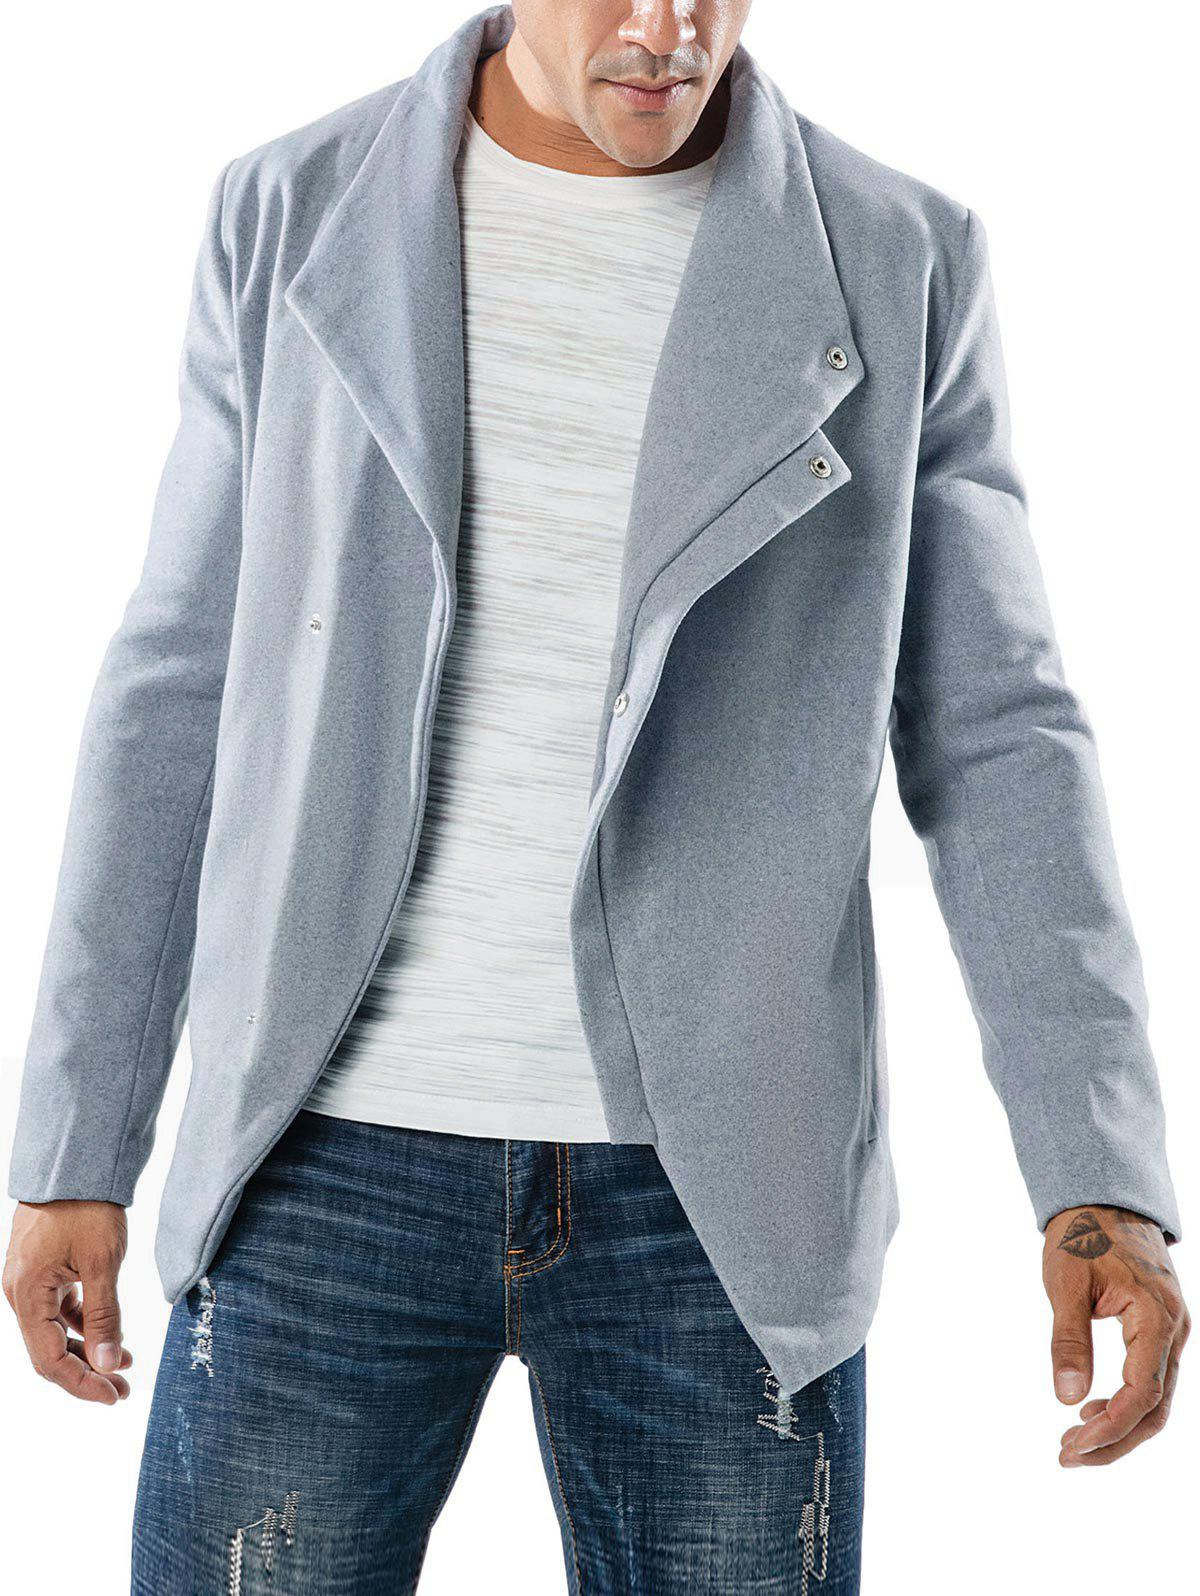 Slant Placket Casual Pockets Jacket - GRAY XL